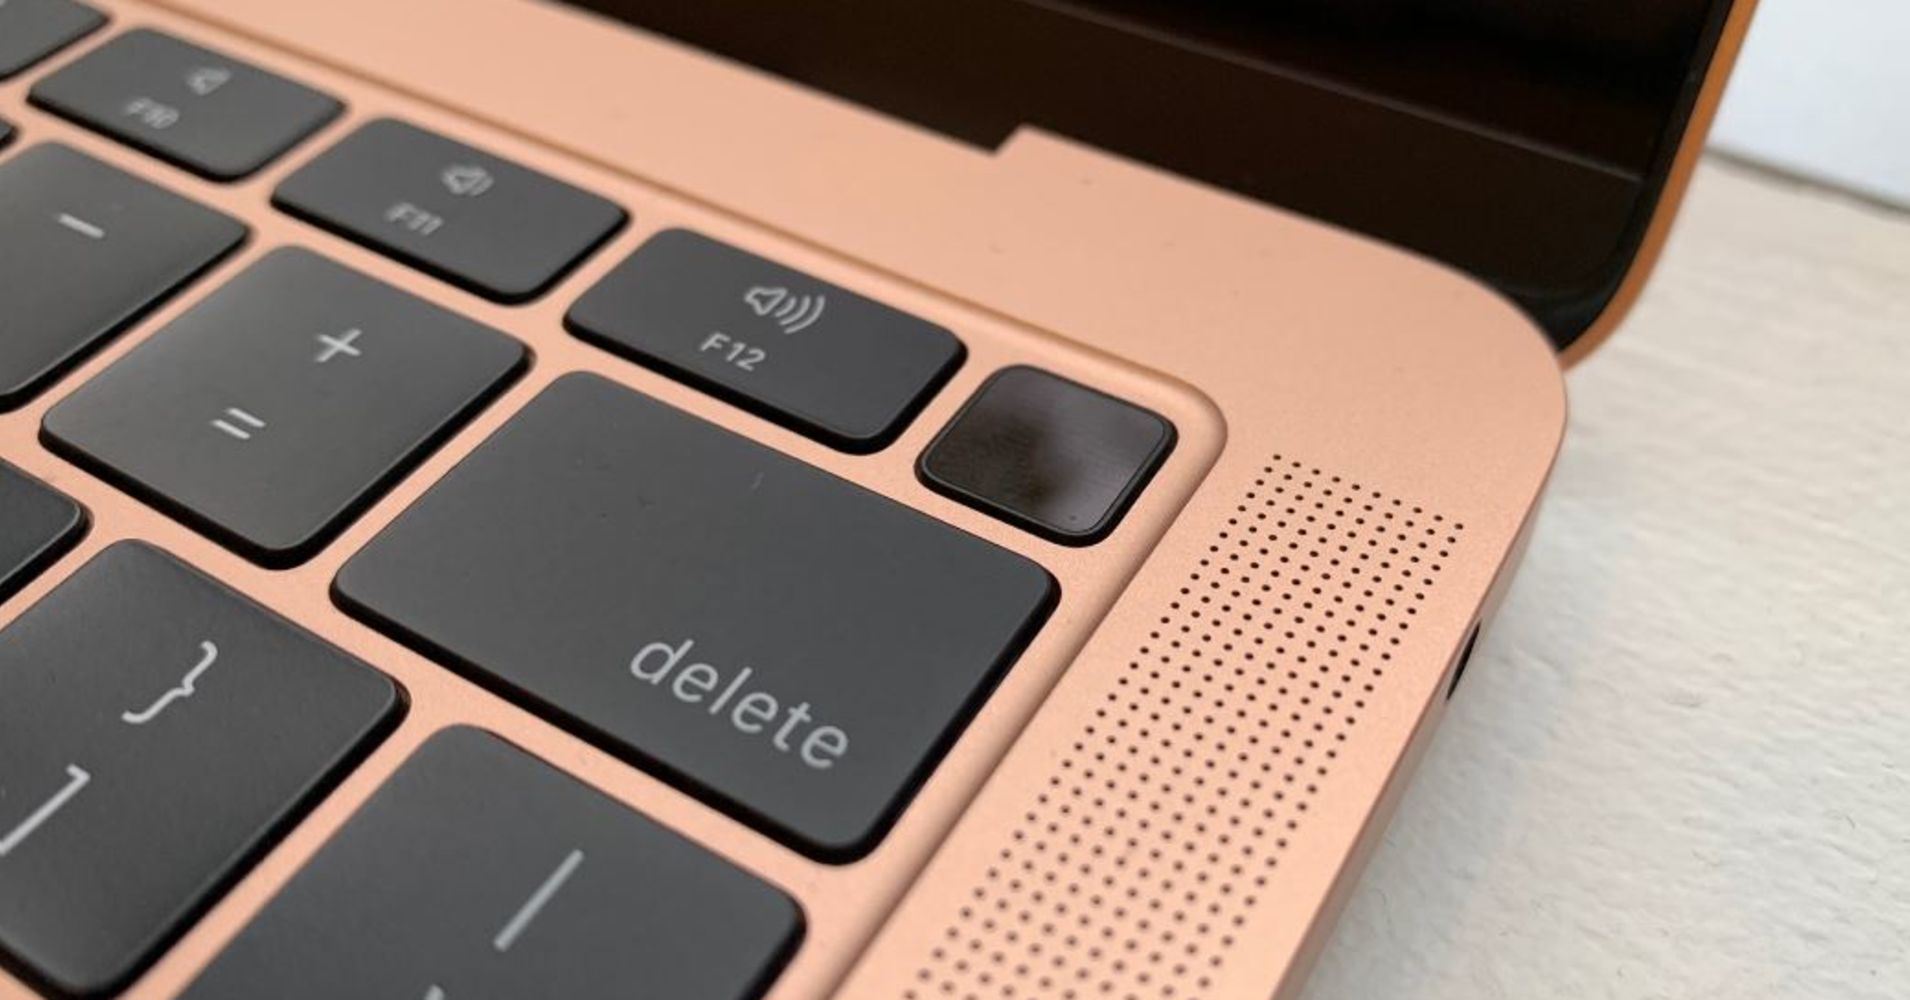 MacBook Air 2018 review round-up: the Air you've been